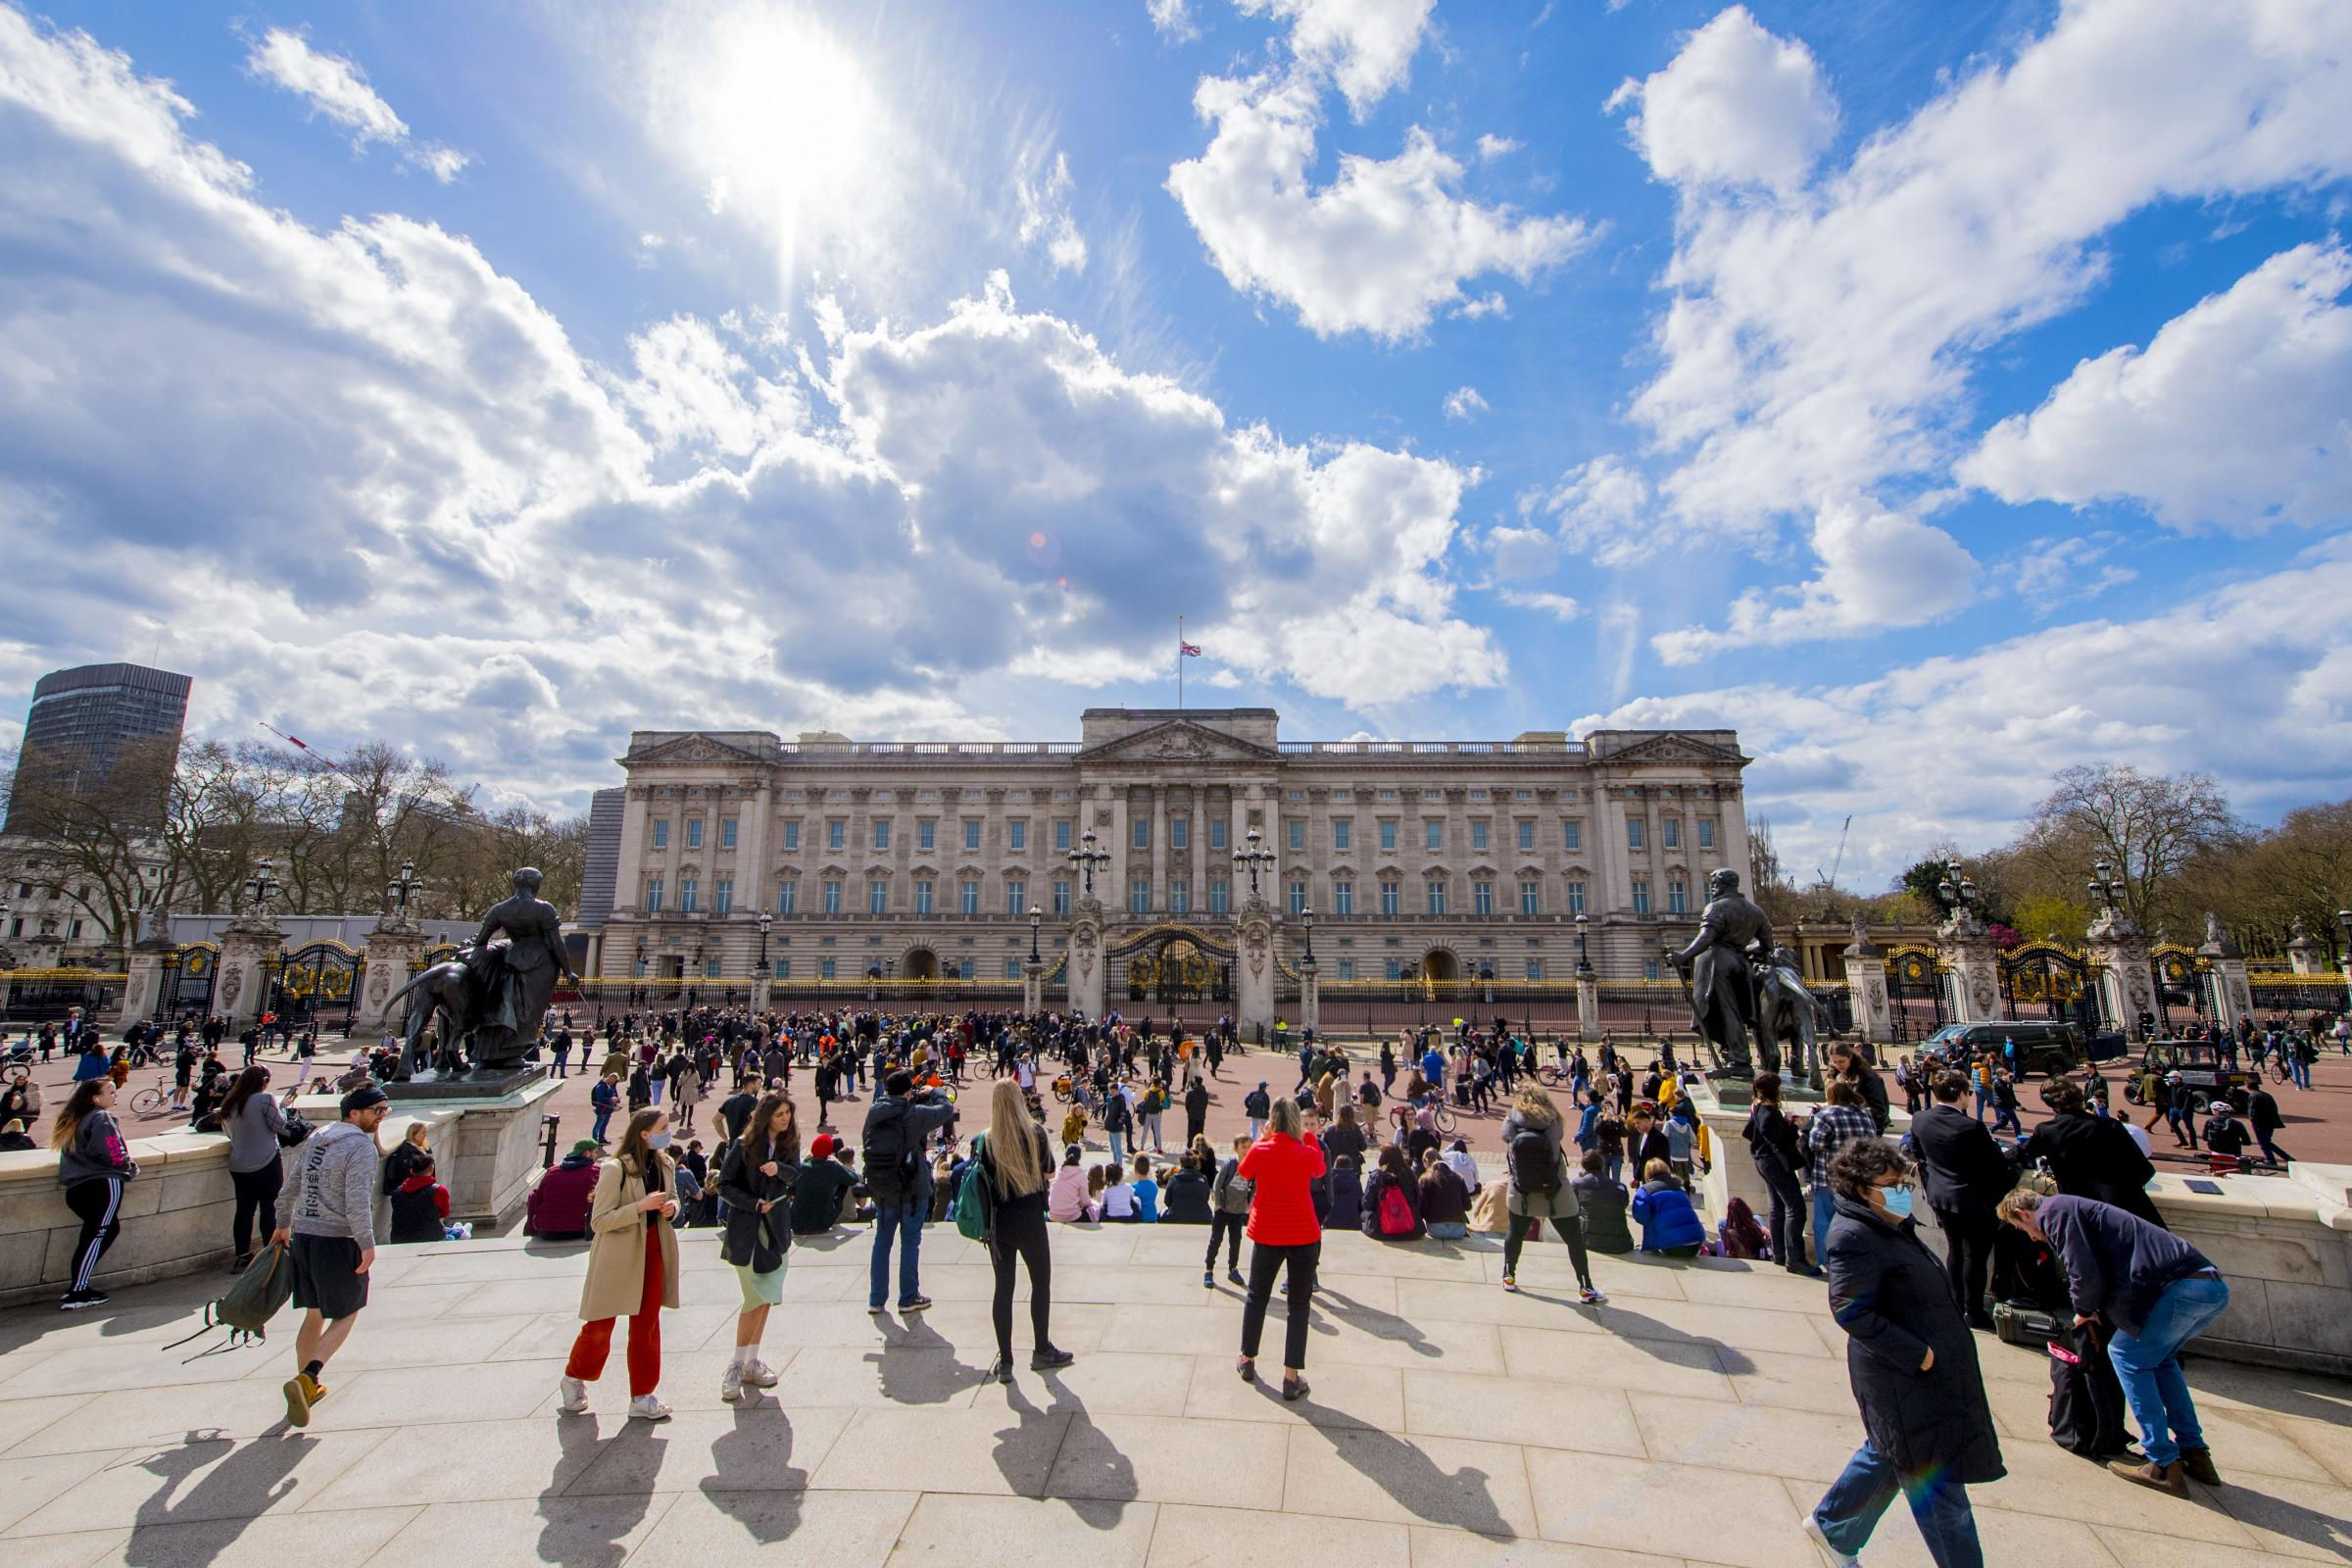 Hundreds flock to Buckingham Palace to pay respects to Philip | The National